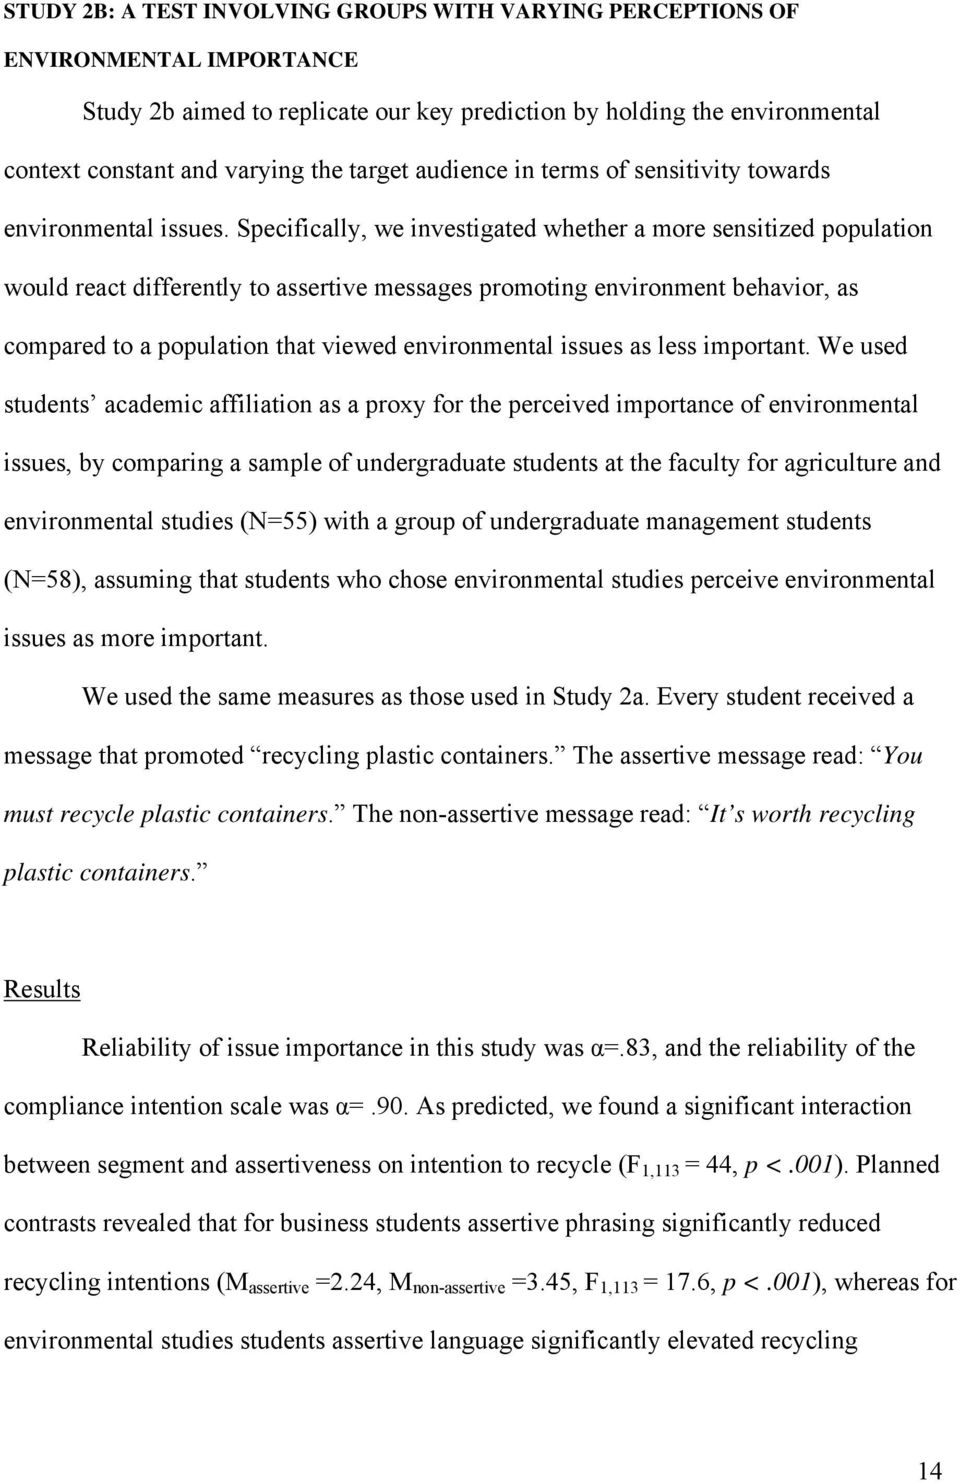 Specifically, we investigated whether a more sensitized population would react differently to assertive messages promoting environment behavior, as compared to a population that viewed environmental